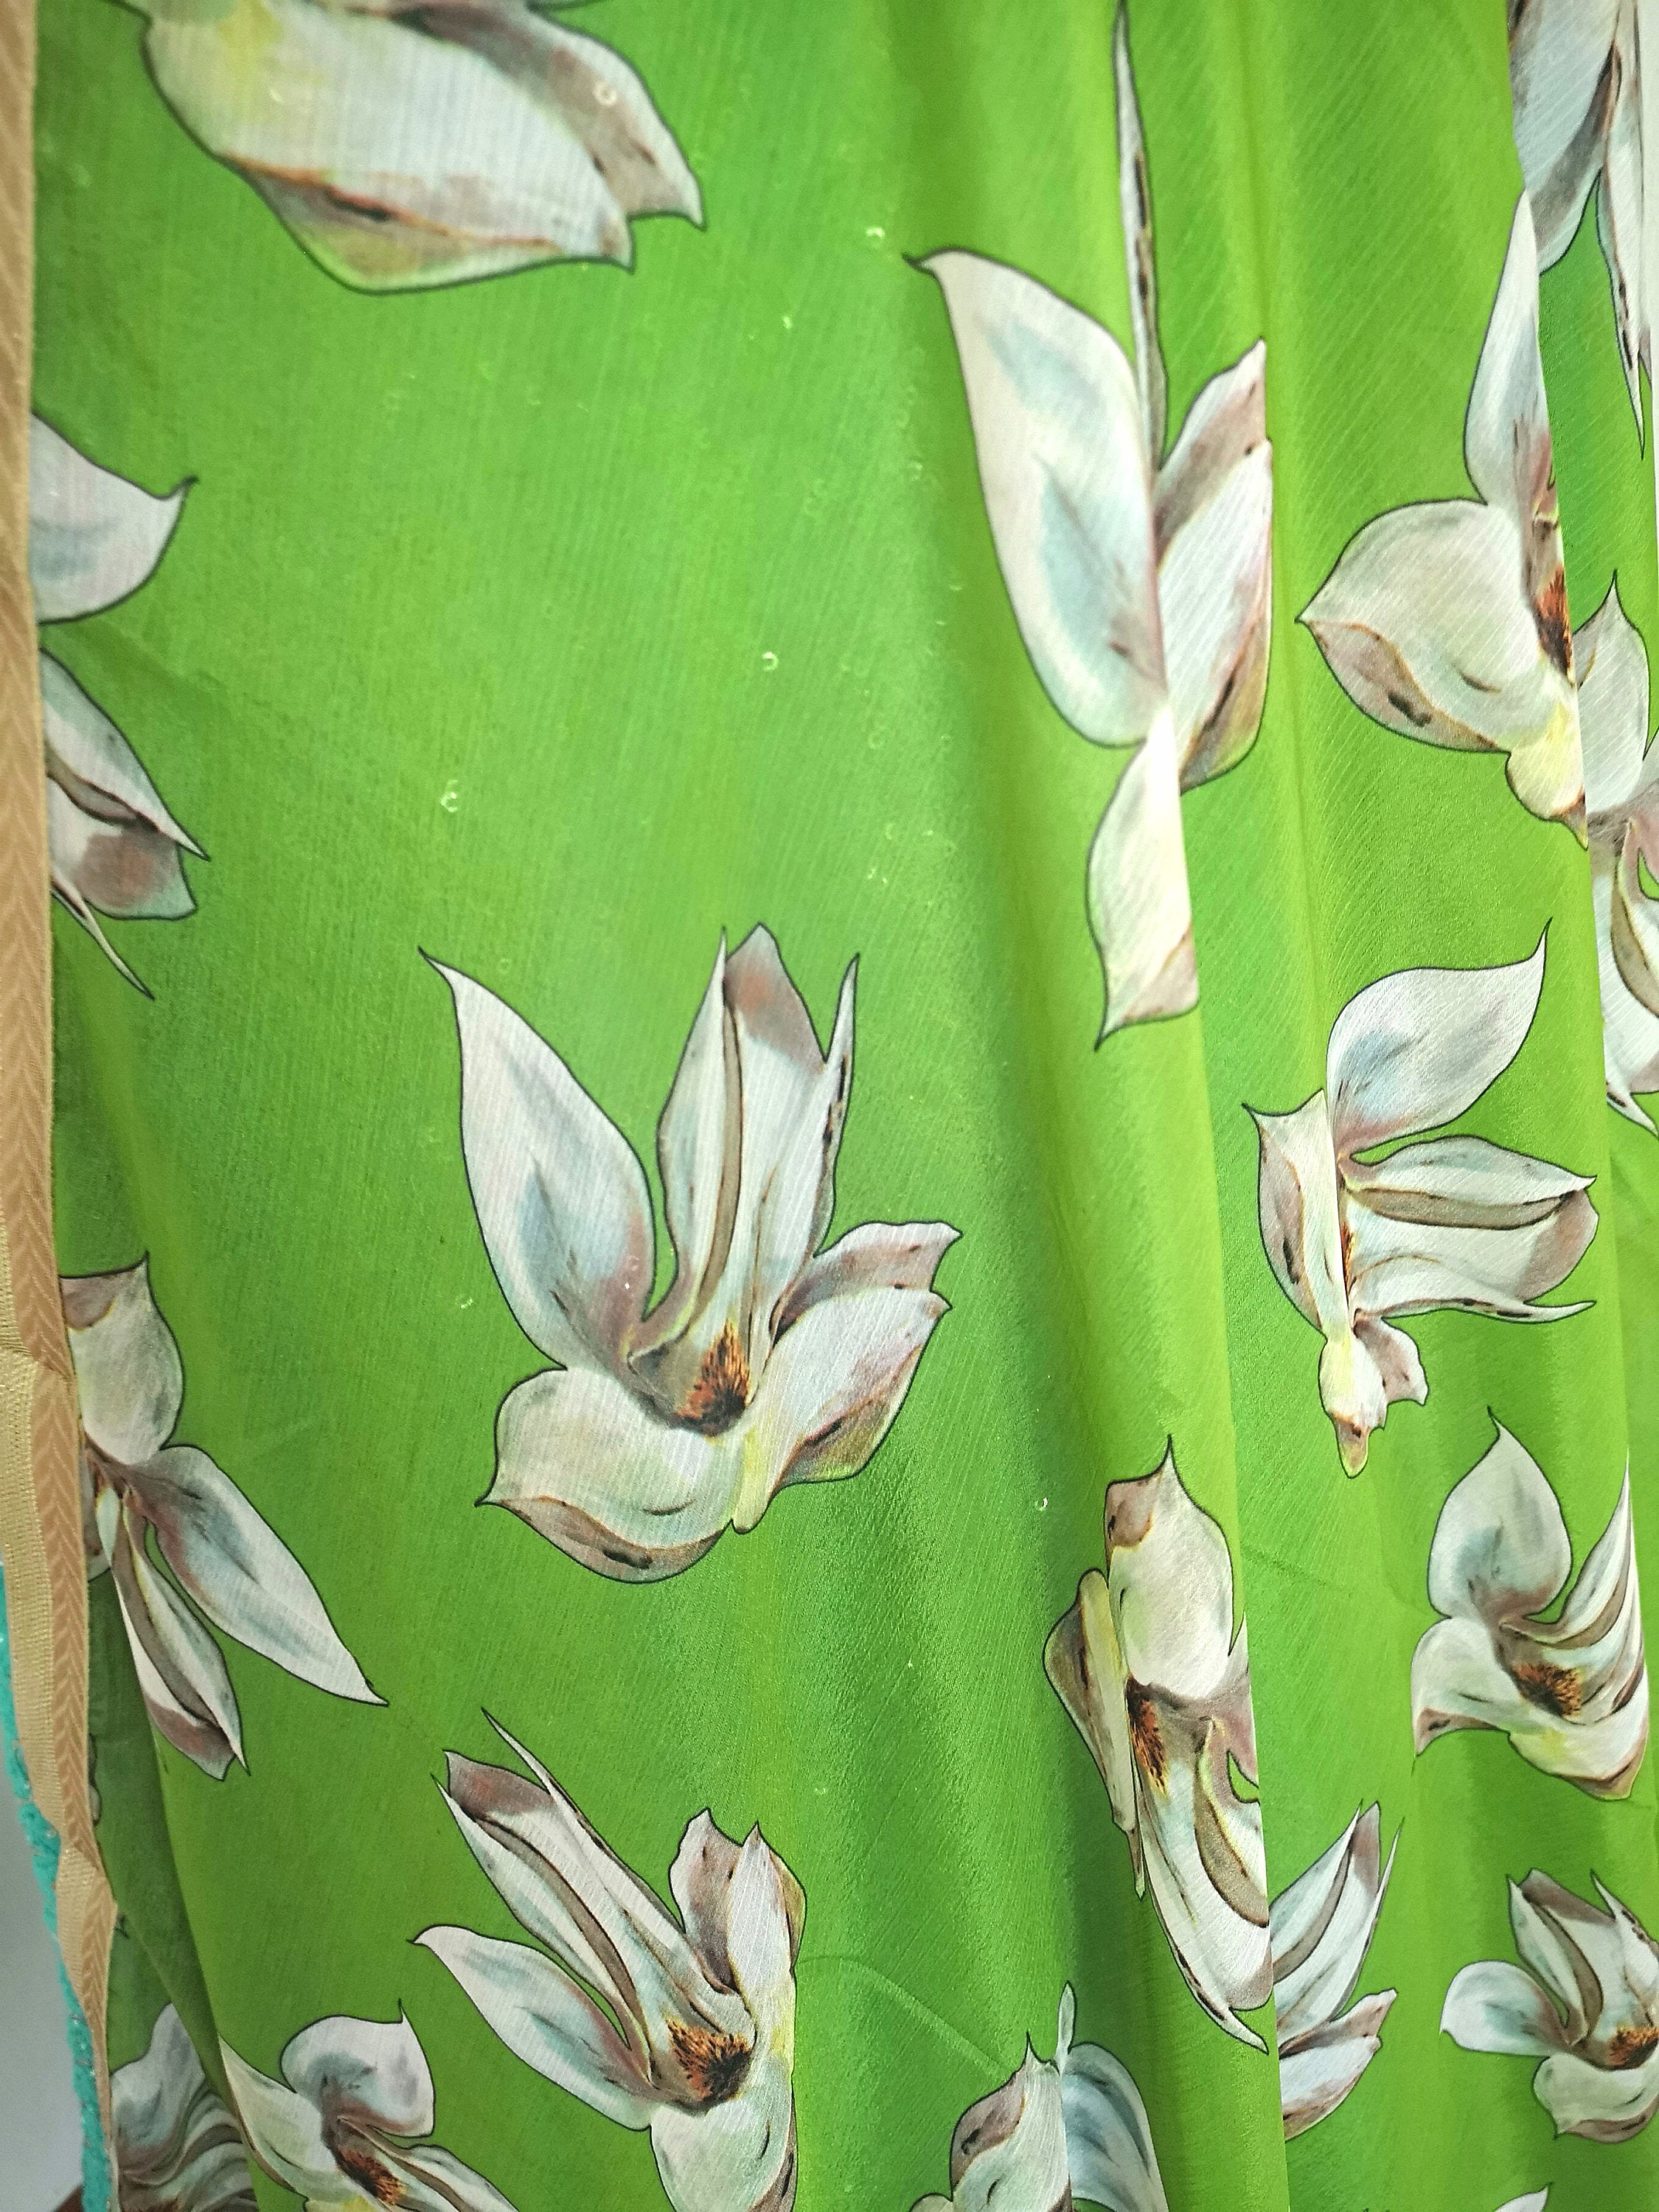 Green Floral chinon dupatta with off-white coloured flowers bridal festive party wear - Pink Chunari